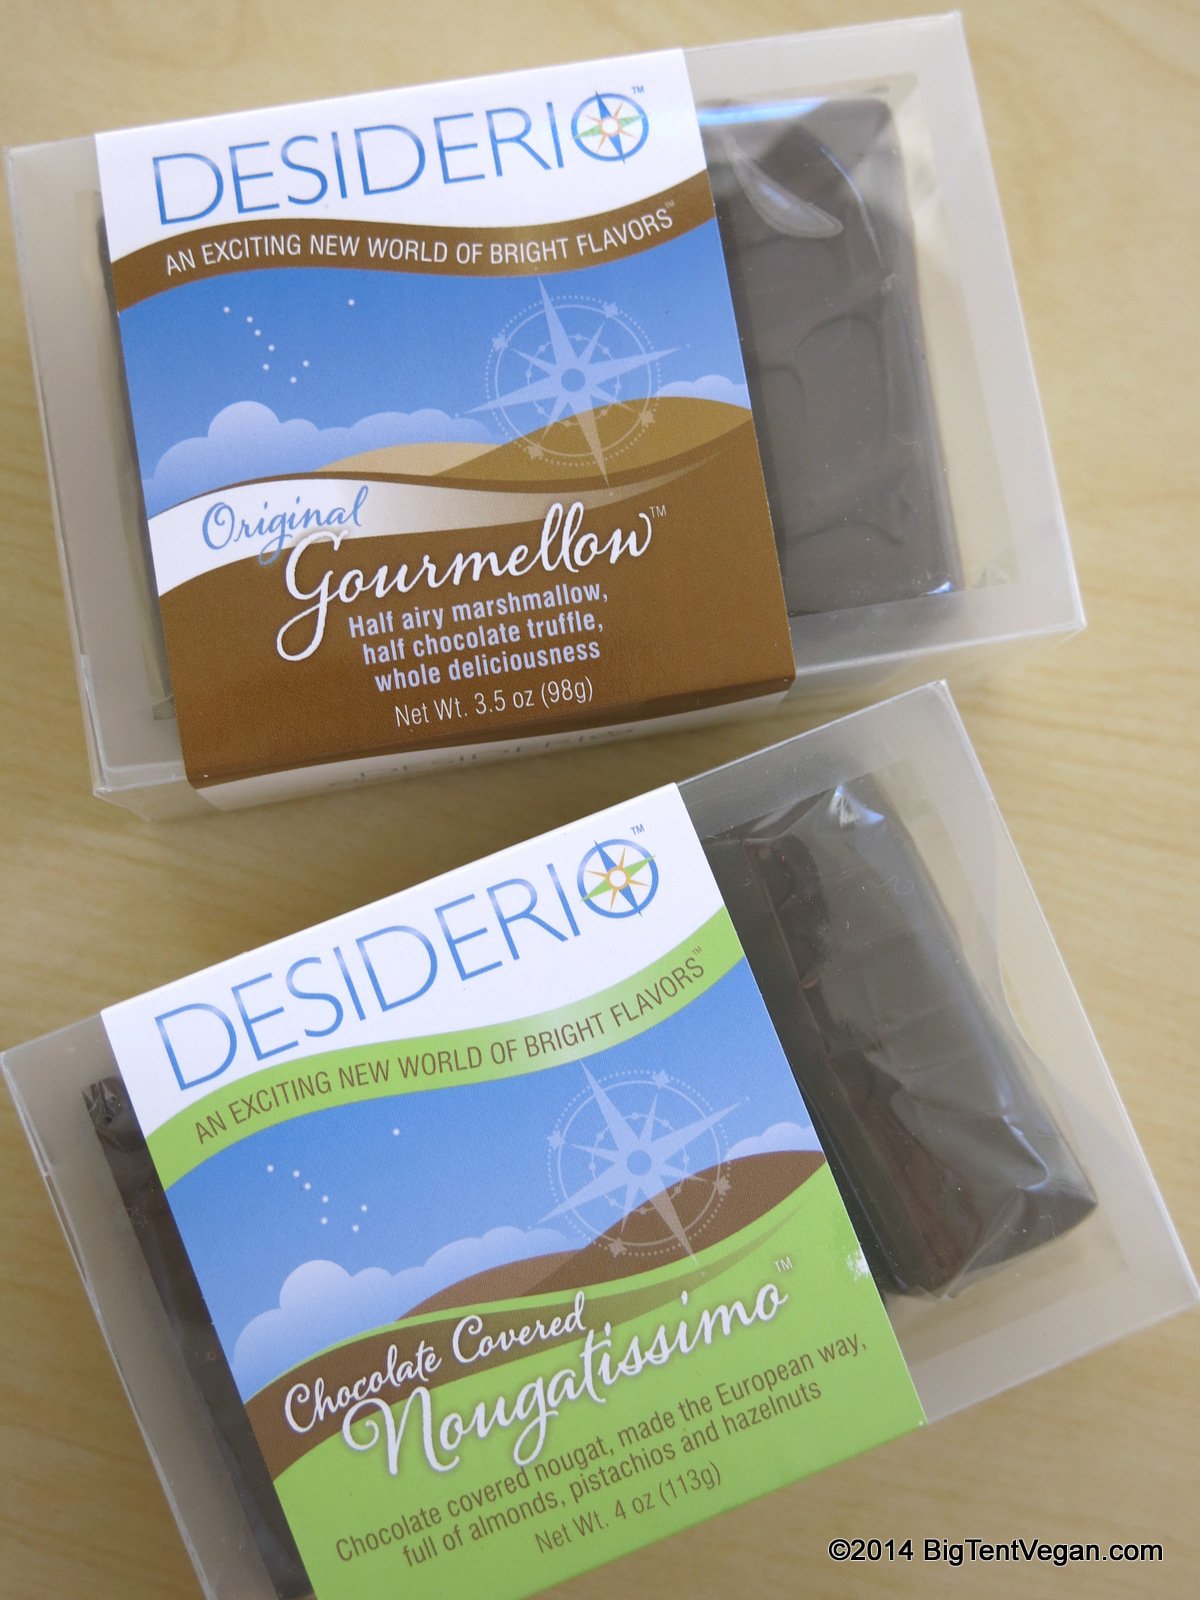 The Original Gourmellow and Chocolate Covered Nougatissimo by Desiderio Chocolates